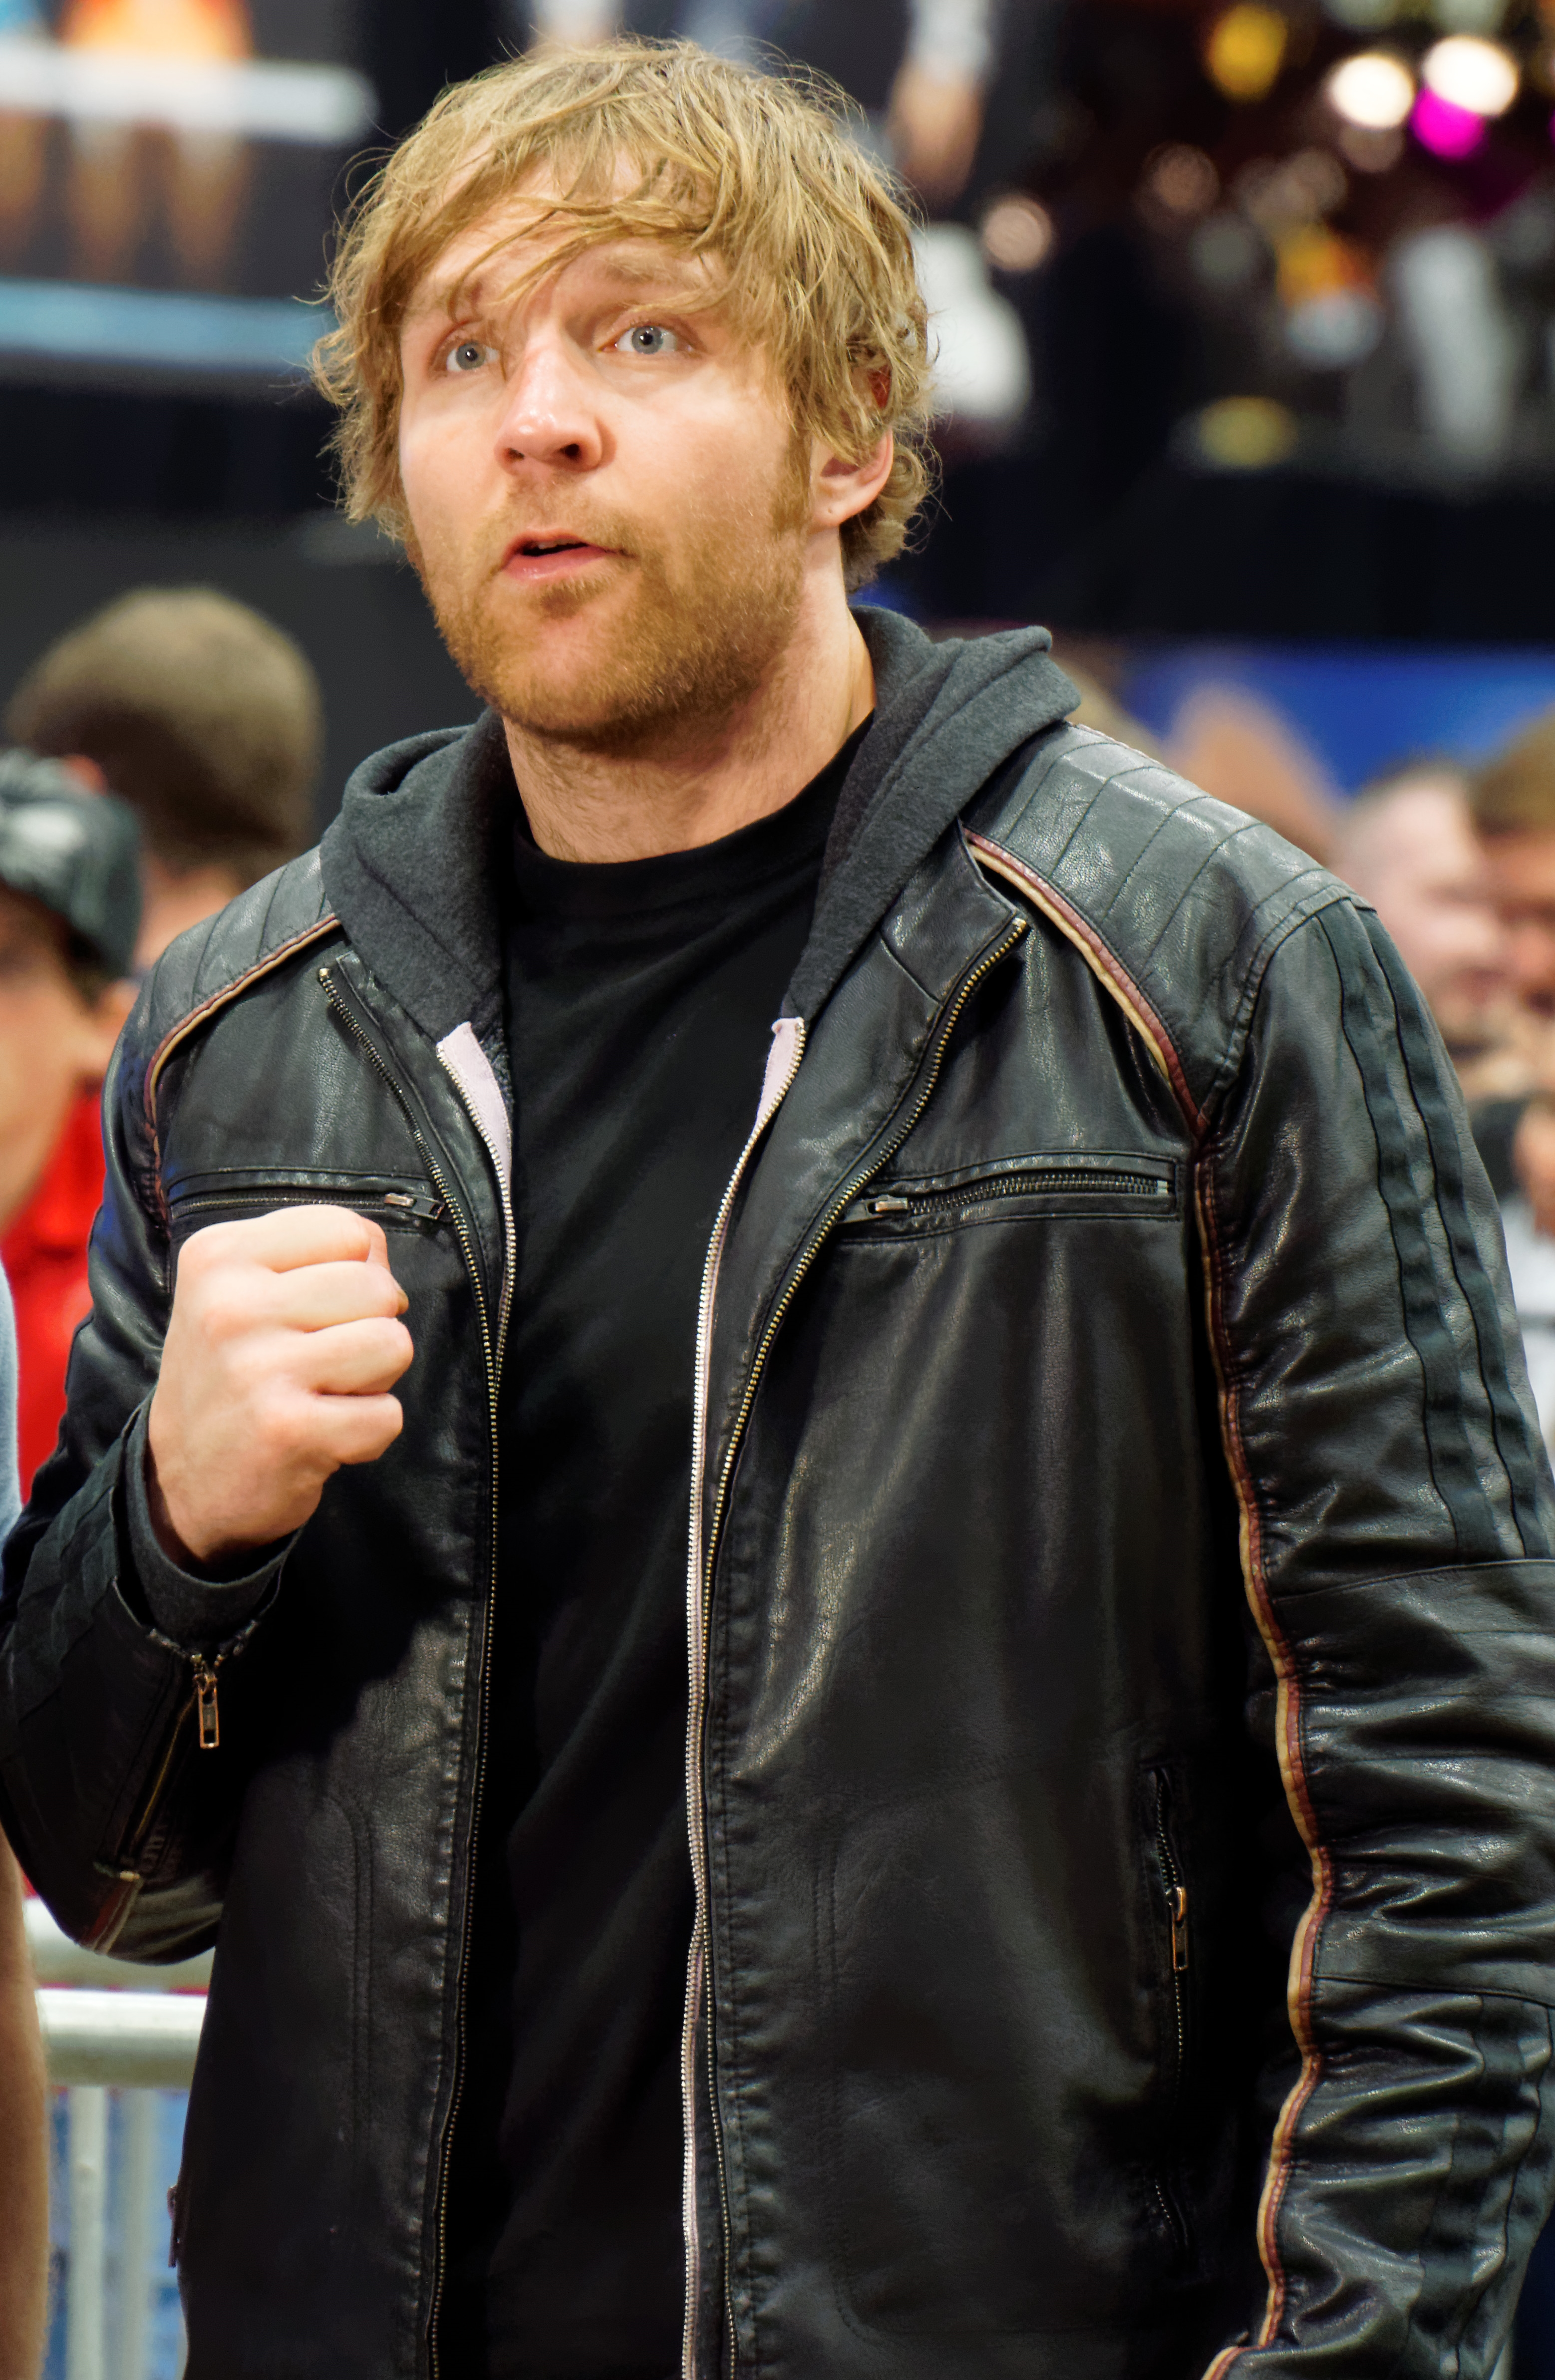 The 32-year old son of father (?) and mother(?) Dean Ambrose in 2018 photo. Dean Ambrose earned a  million dollar salary - leaving the net worth at 6 million in 2018